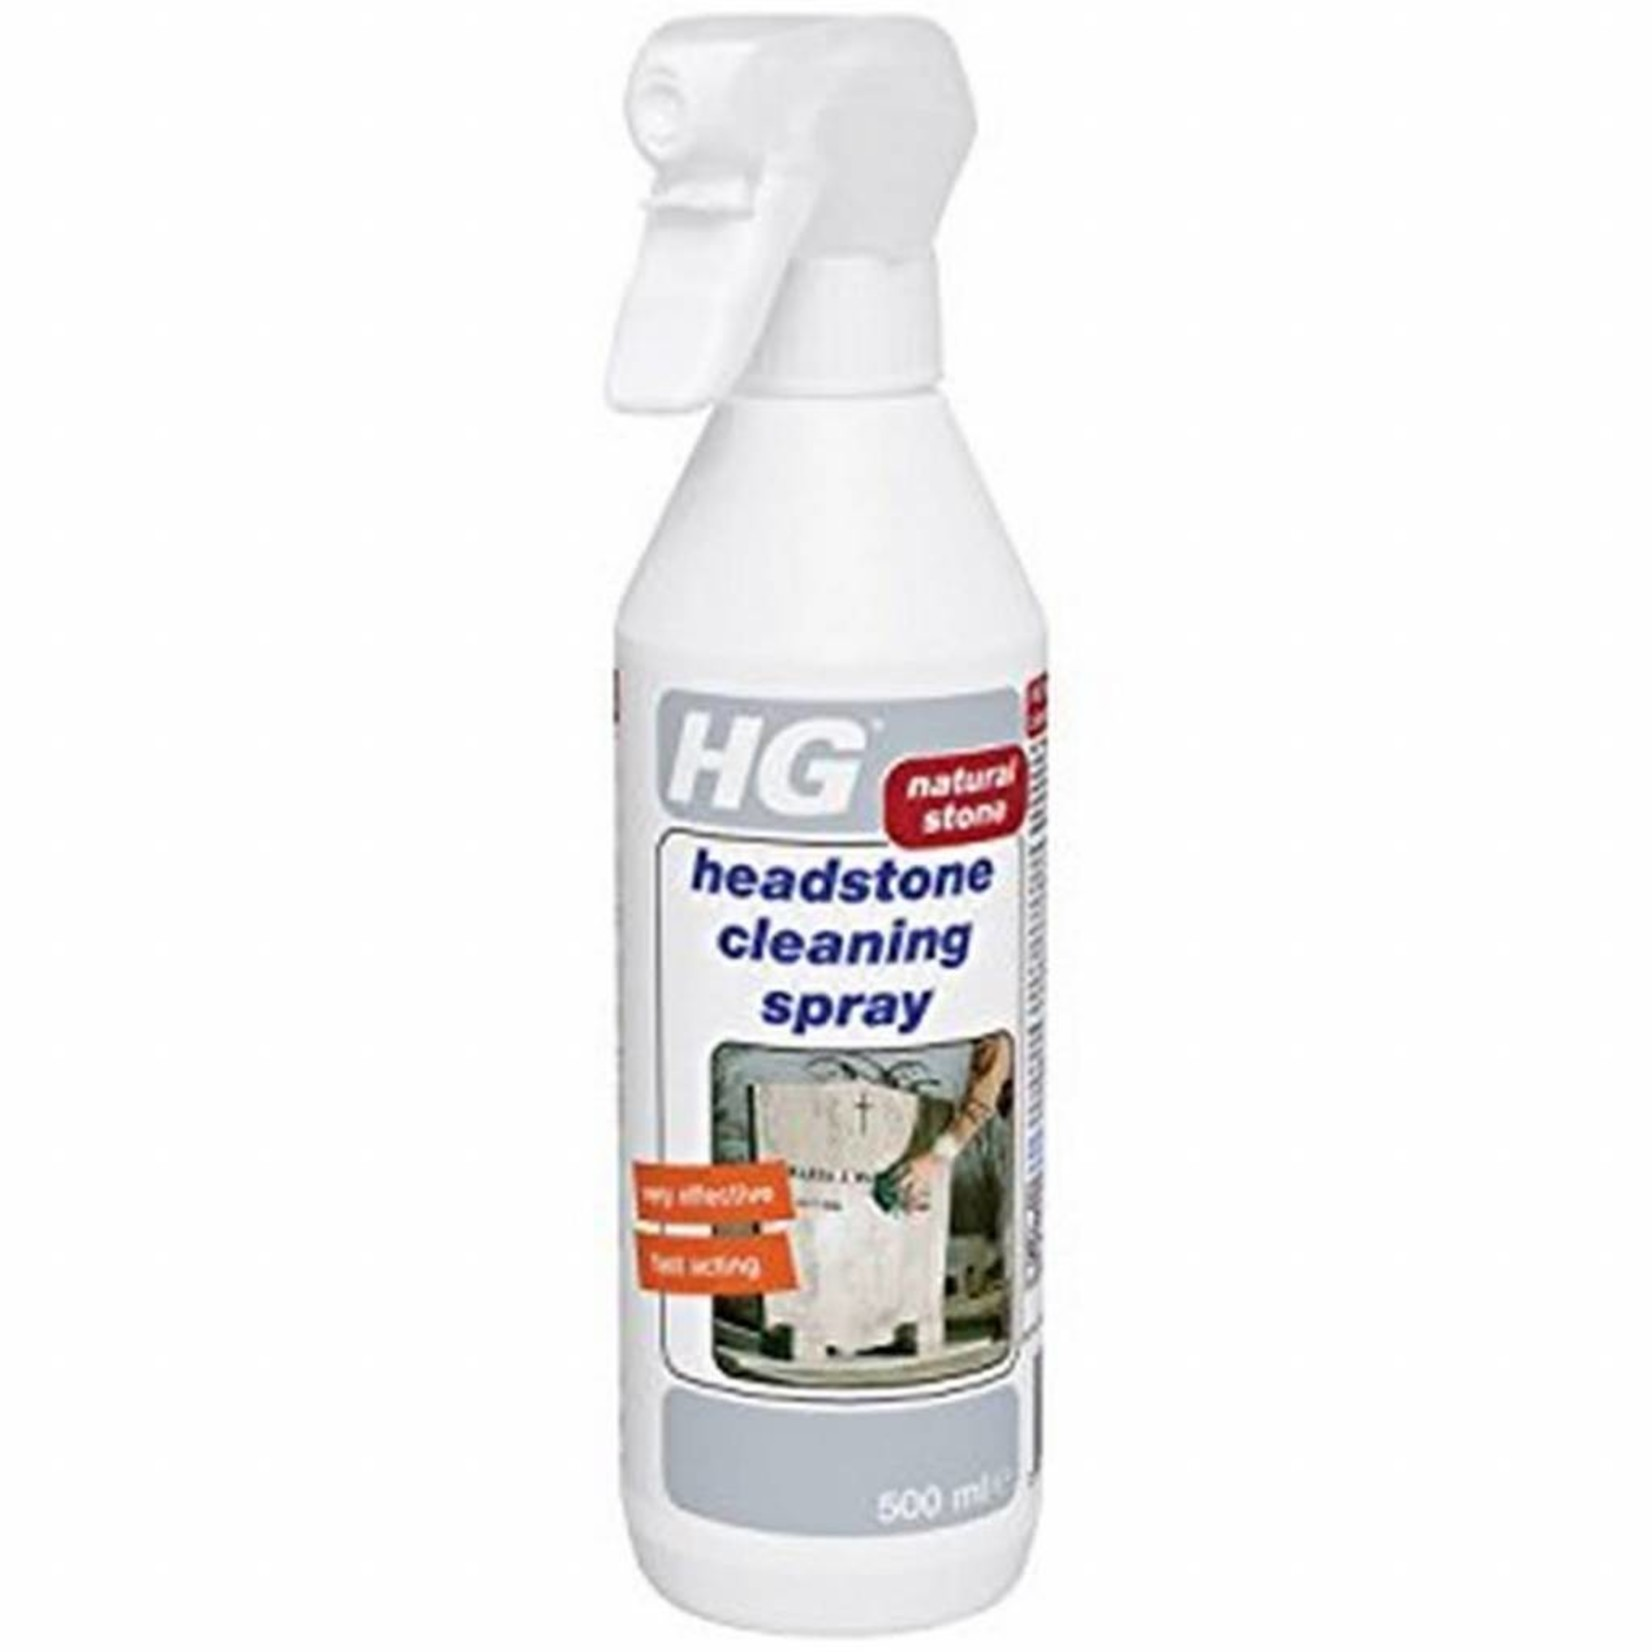 HG HG HEADSTONE CLEANING SPRAY NATURAL STONE